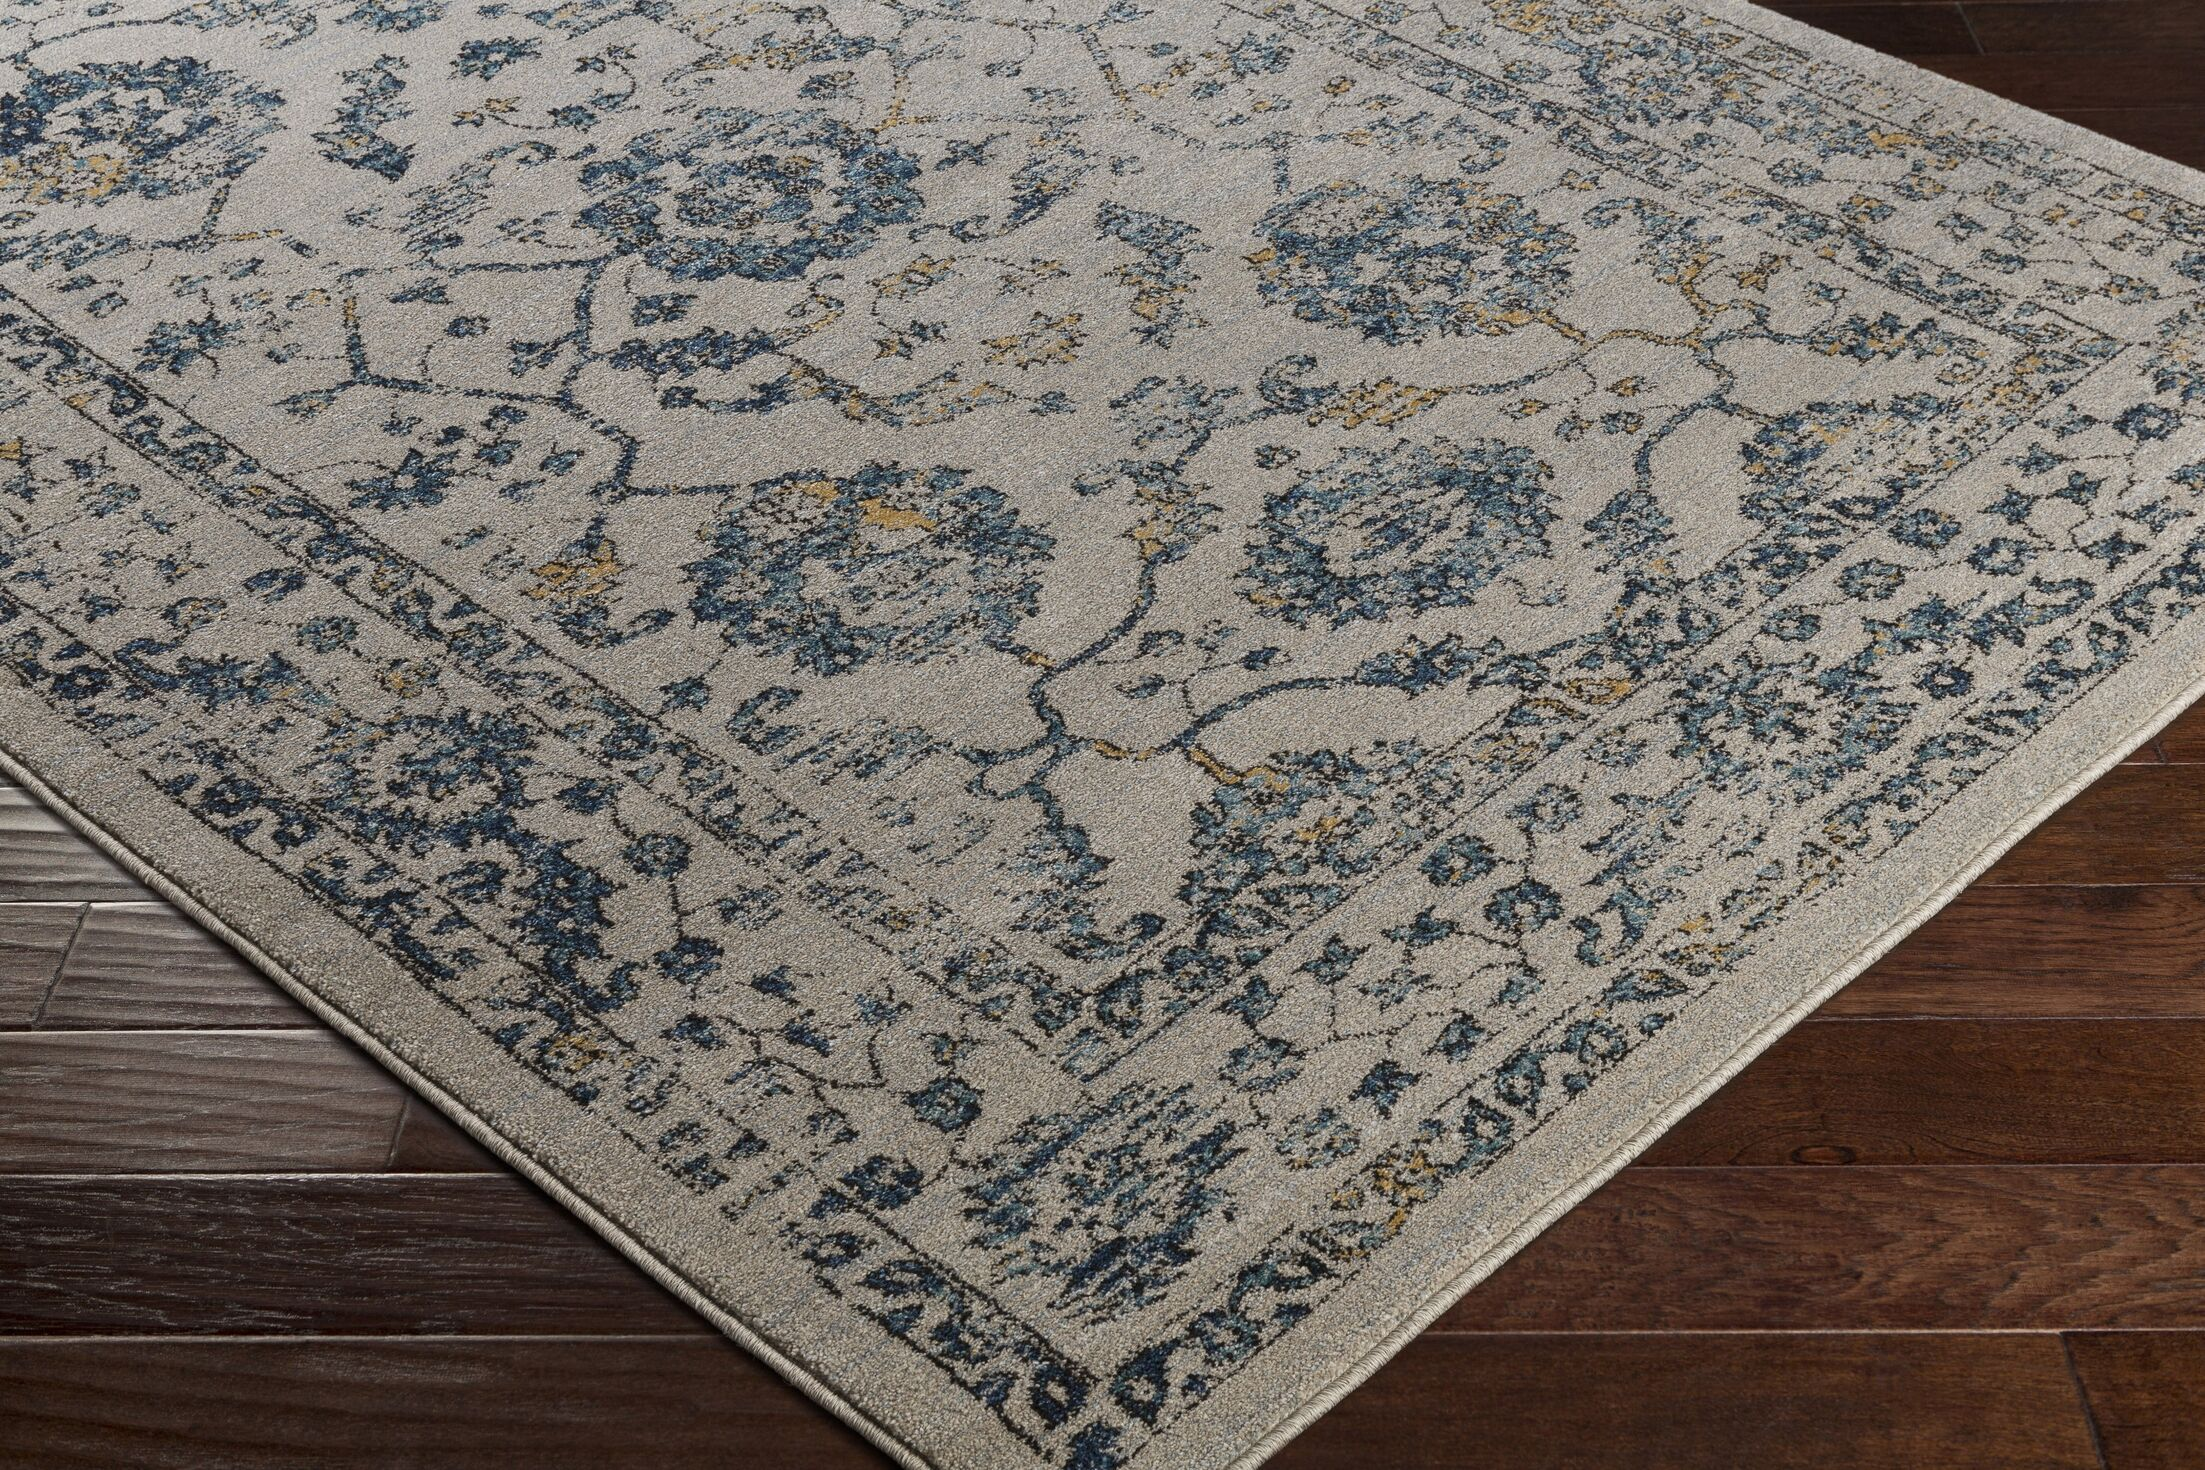 Cassian Neutral Teal/Taupe Area Rug Rug Size: Rectangle 5'3